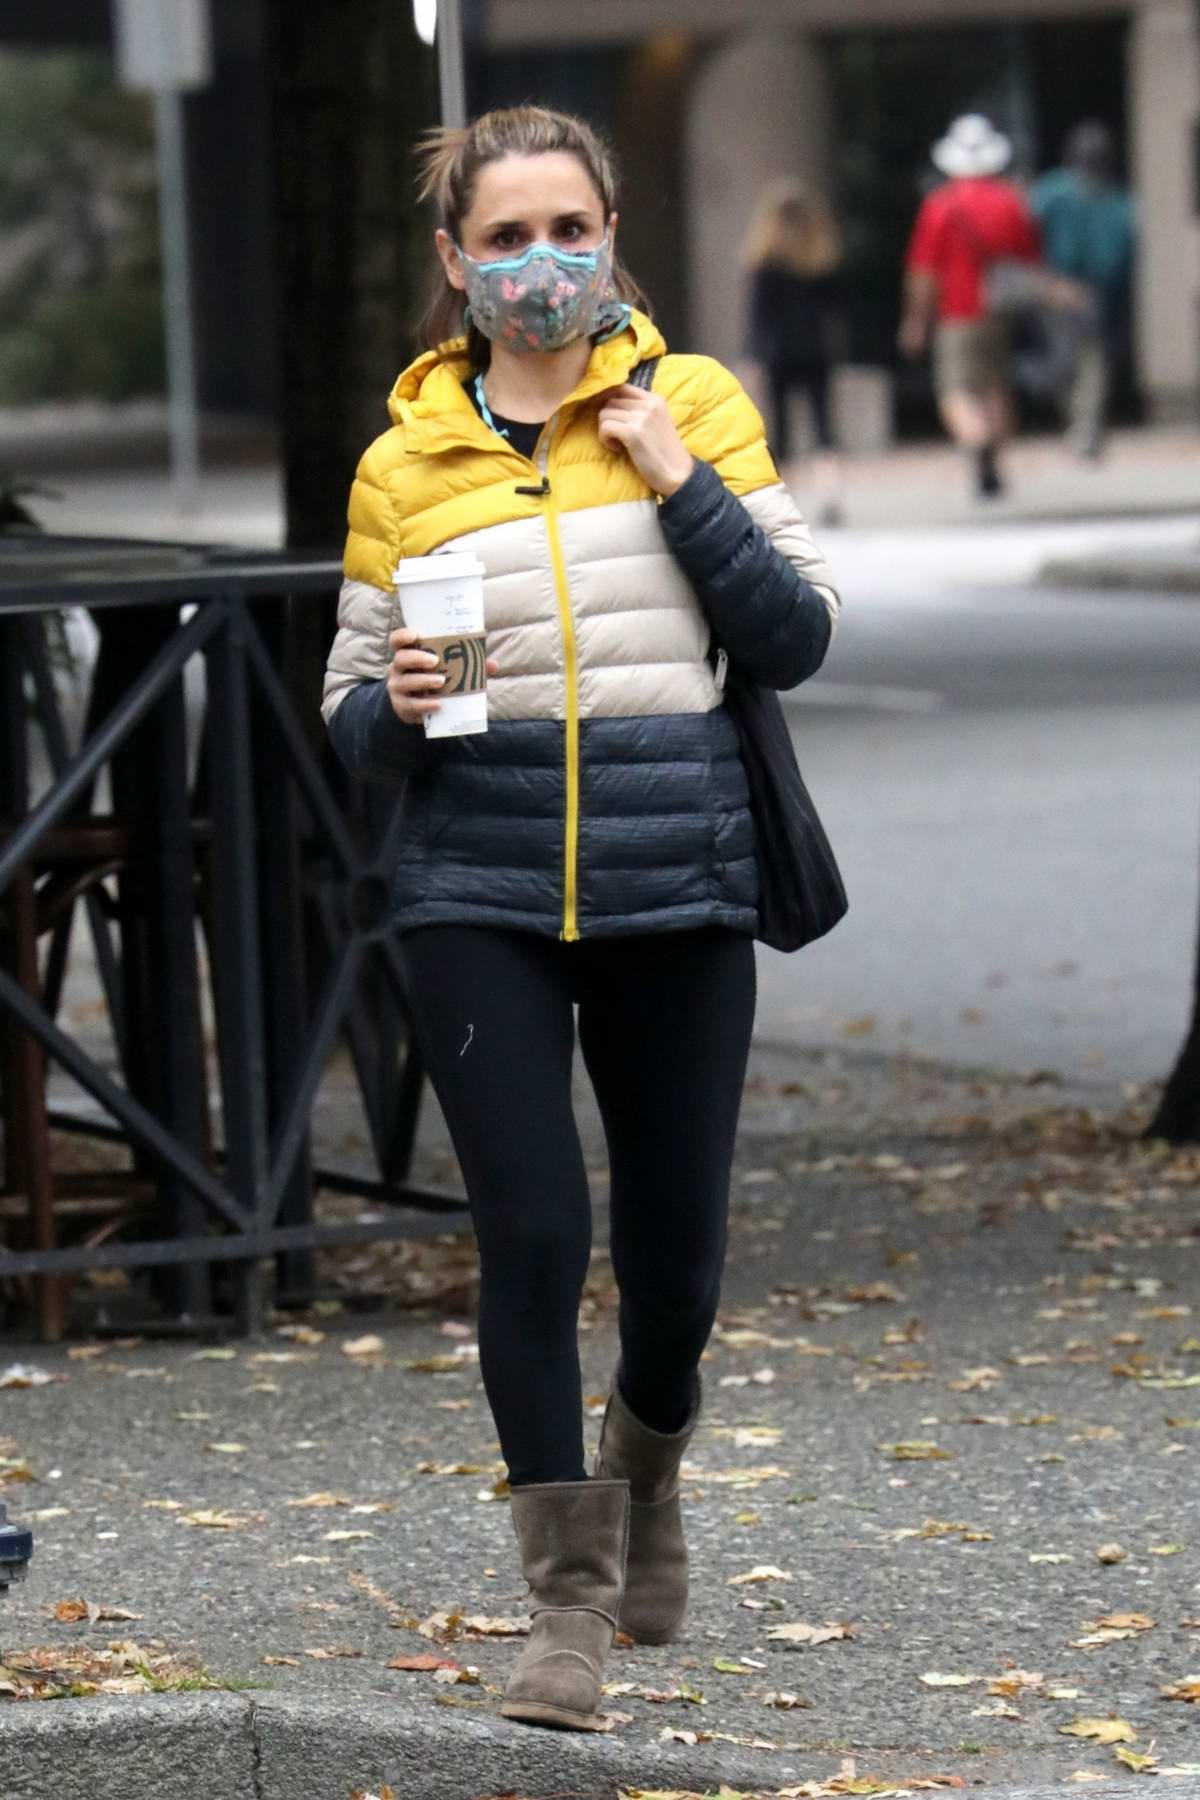 Rachael Leigh Cook celebrates her 41st birthday with a Starbucks and a walk on a cool fall day in Vancouver, Canada